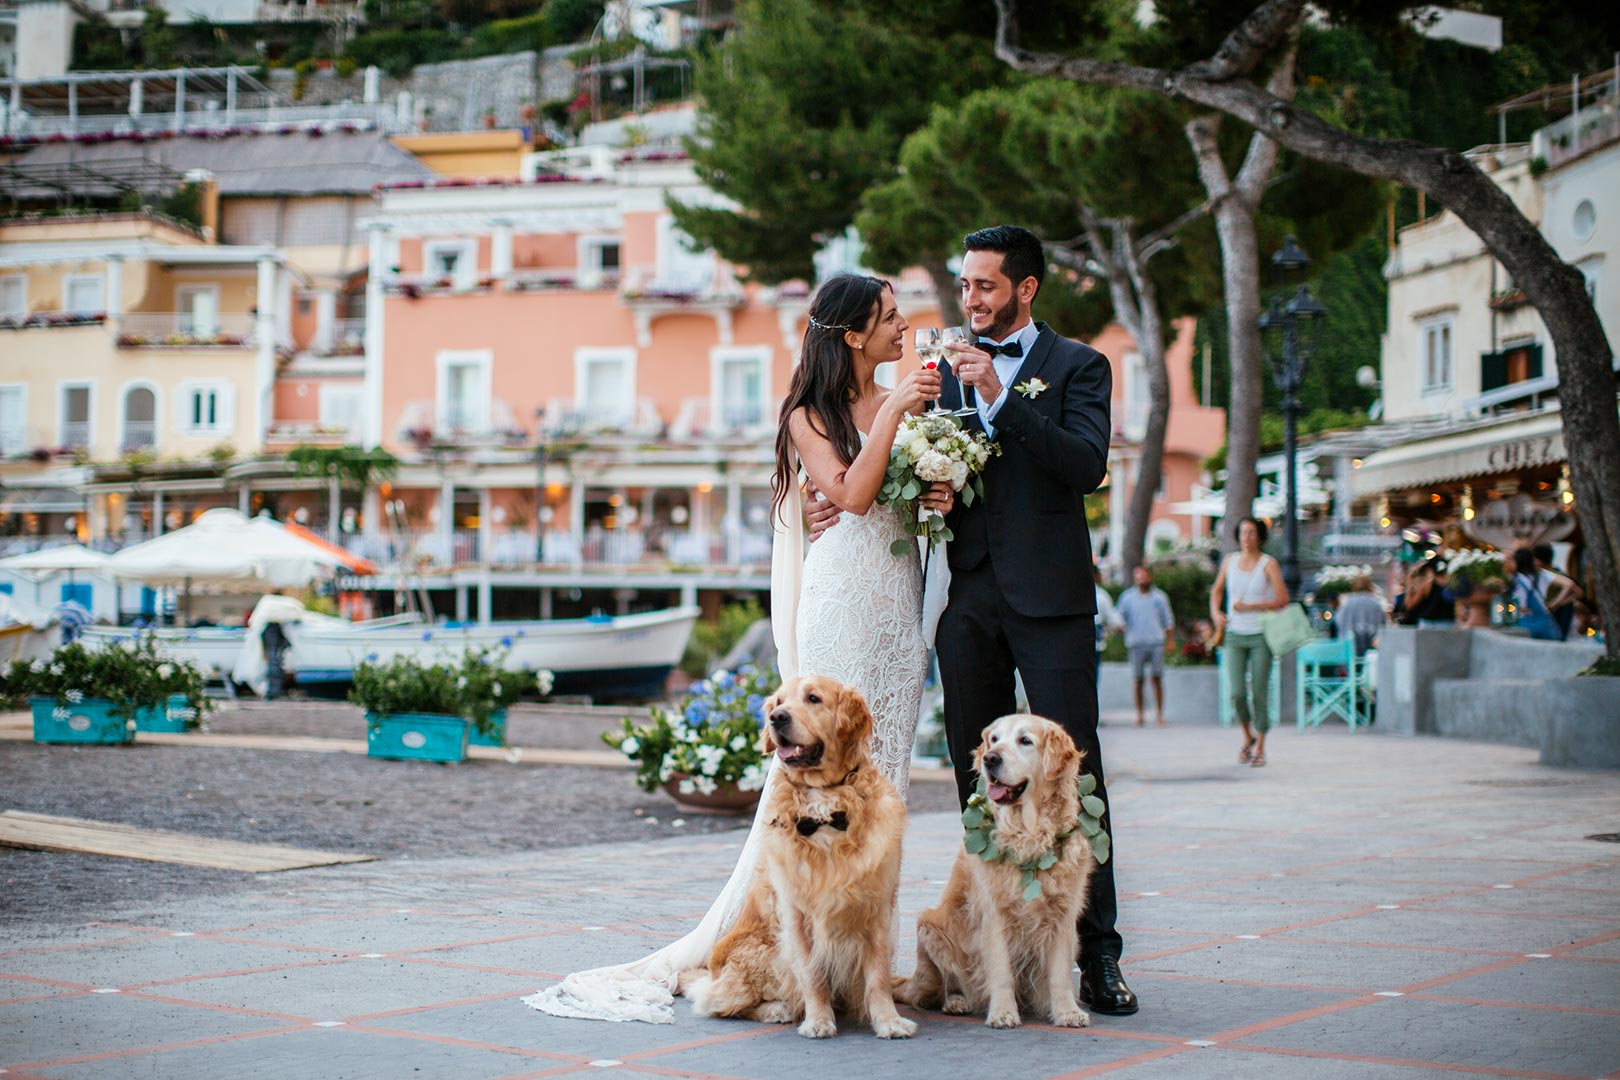 Exclusive-wedding-photography-Gennaro-Antonella-Positano-Amalfi-Coast-Villa-Tre-Ville